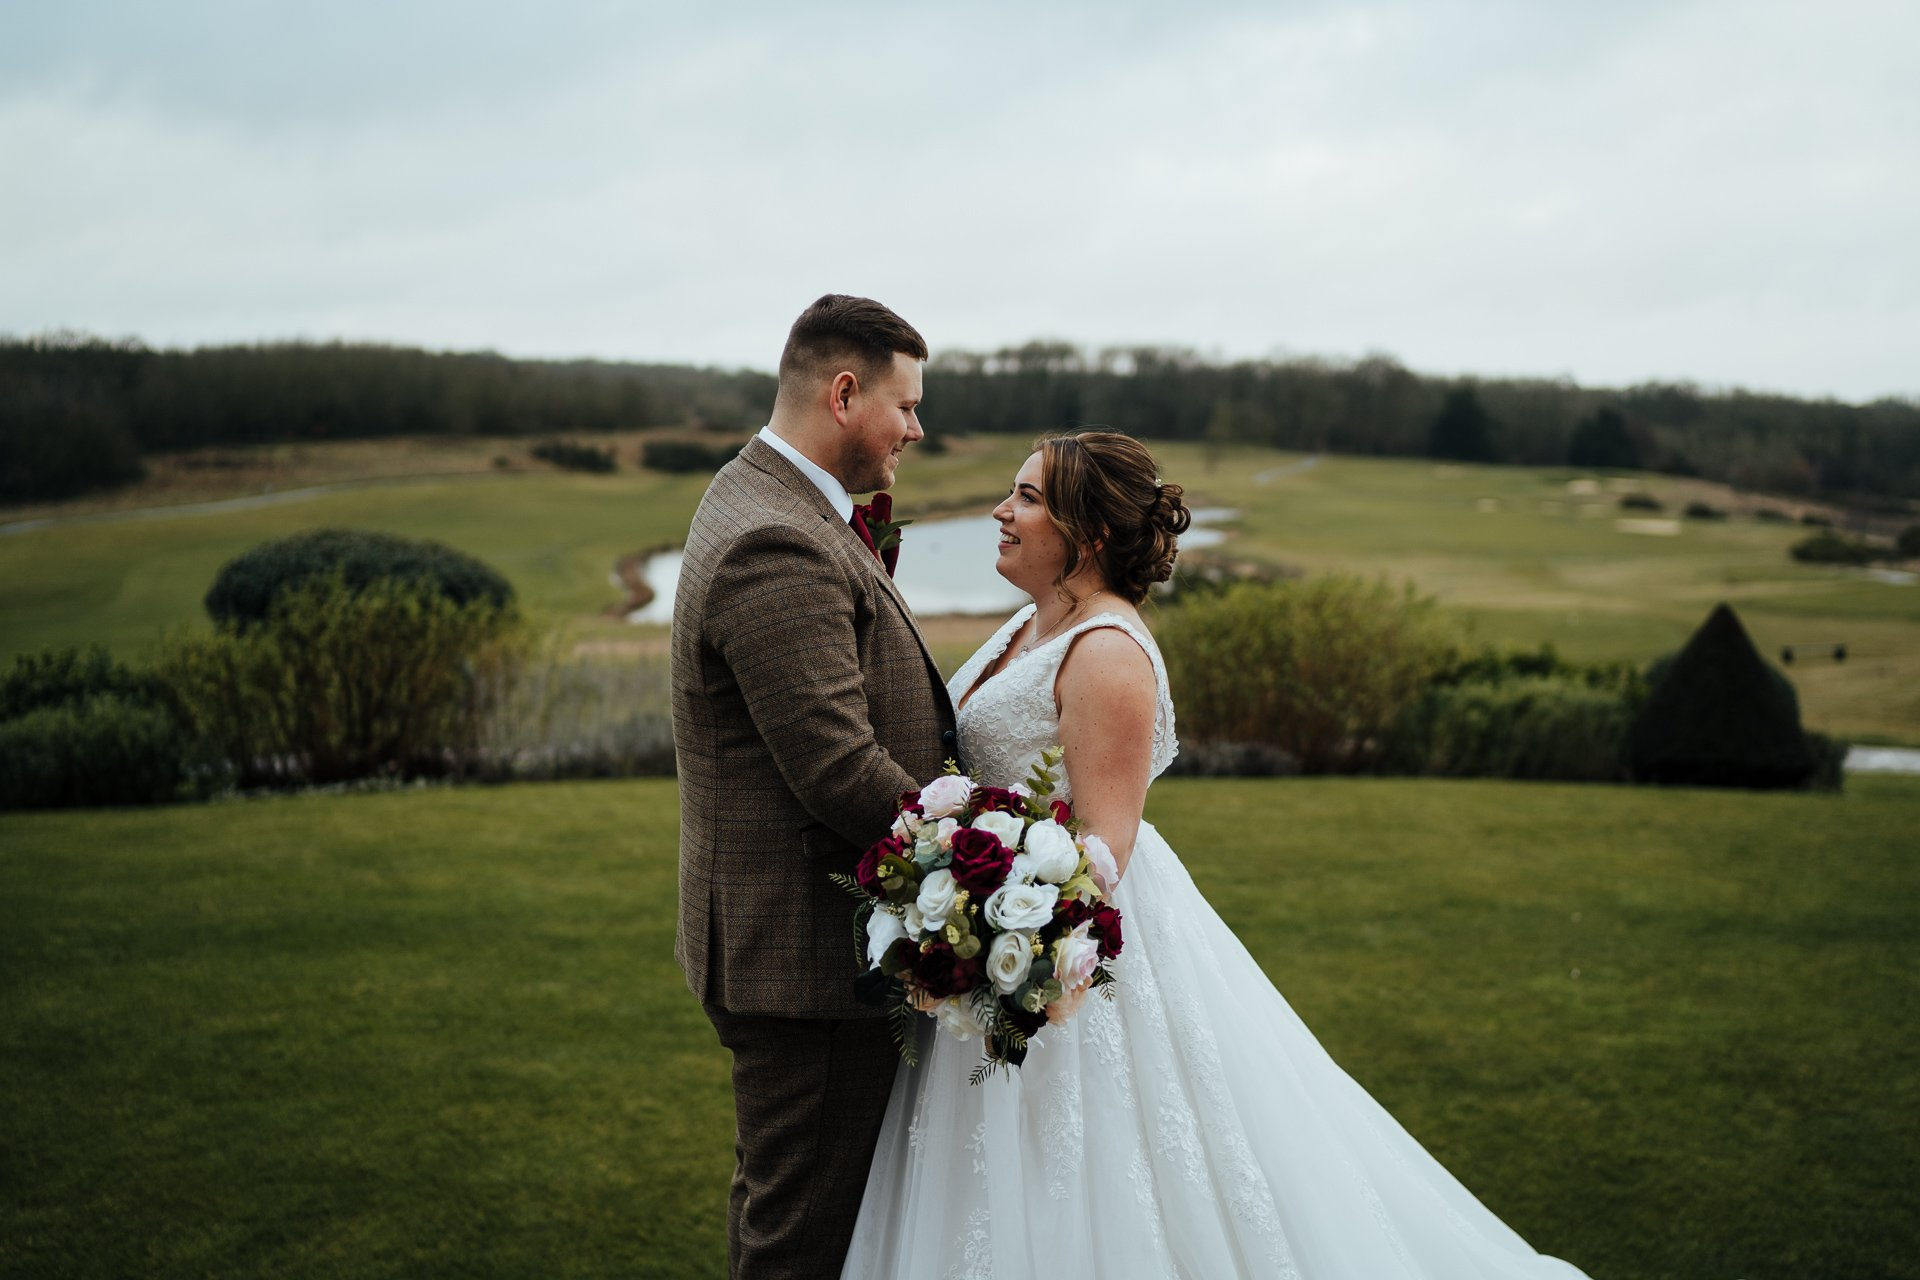 Bride and groom smiling at each other overlooking the London Golf Club Kent